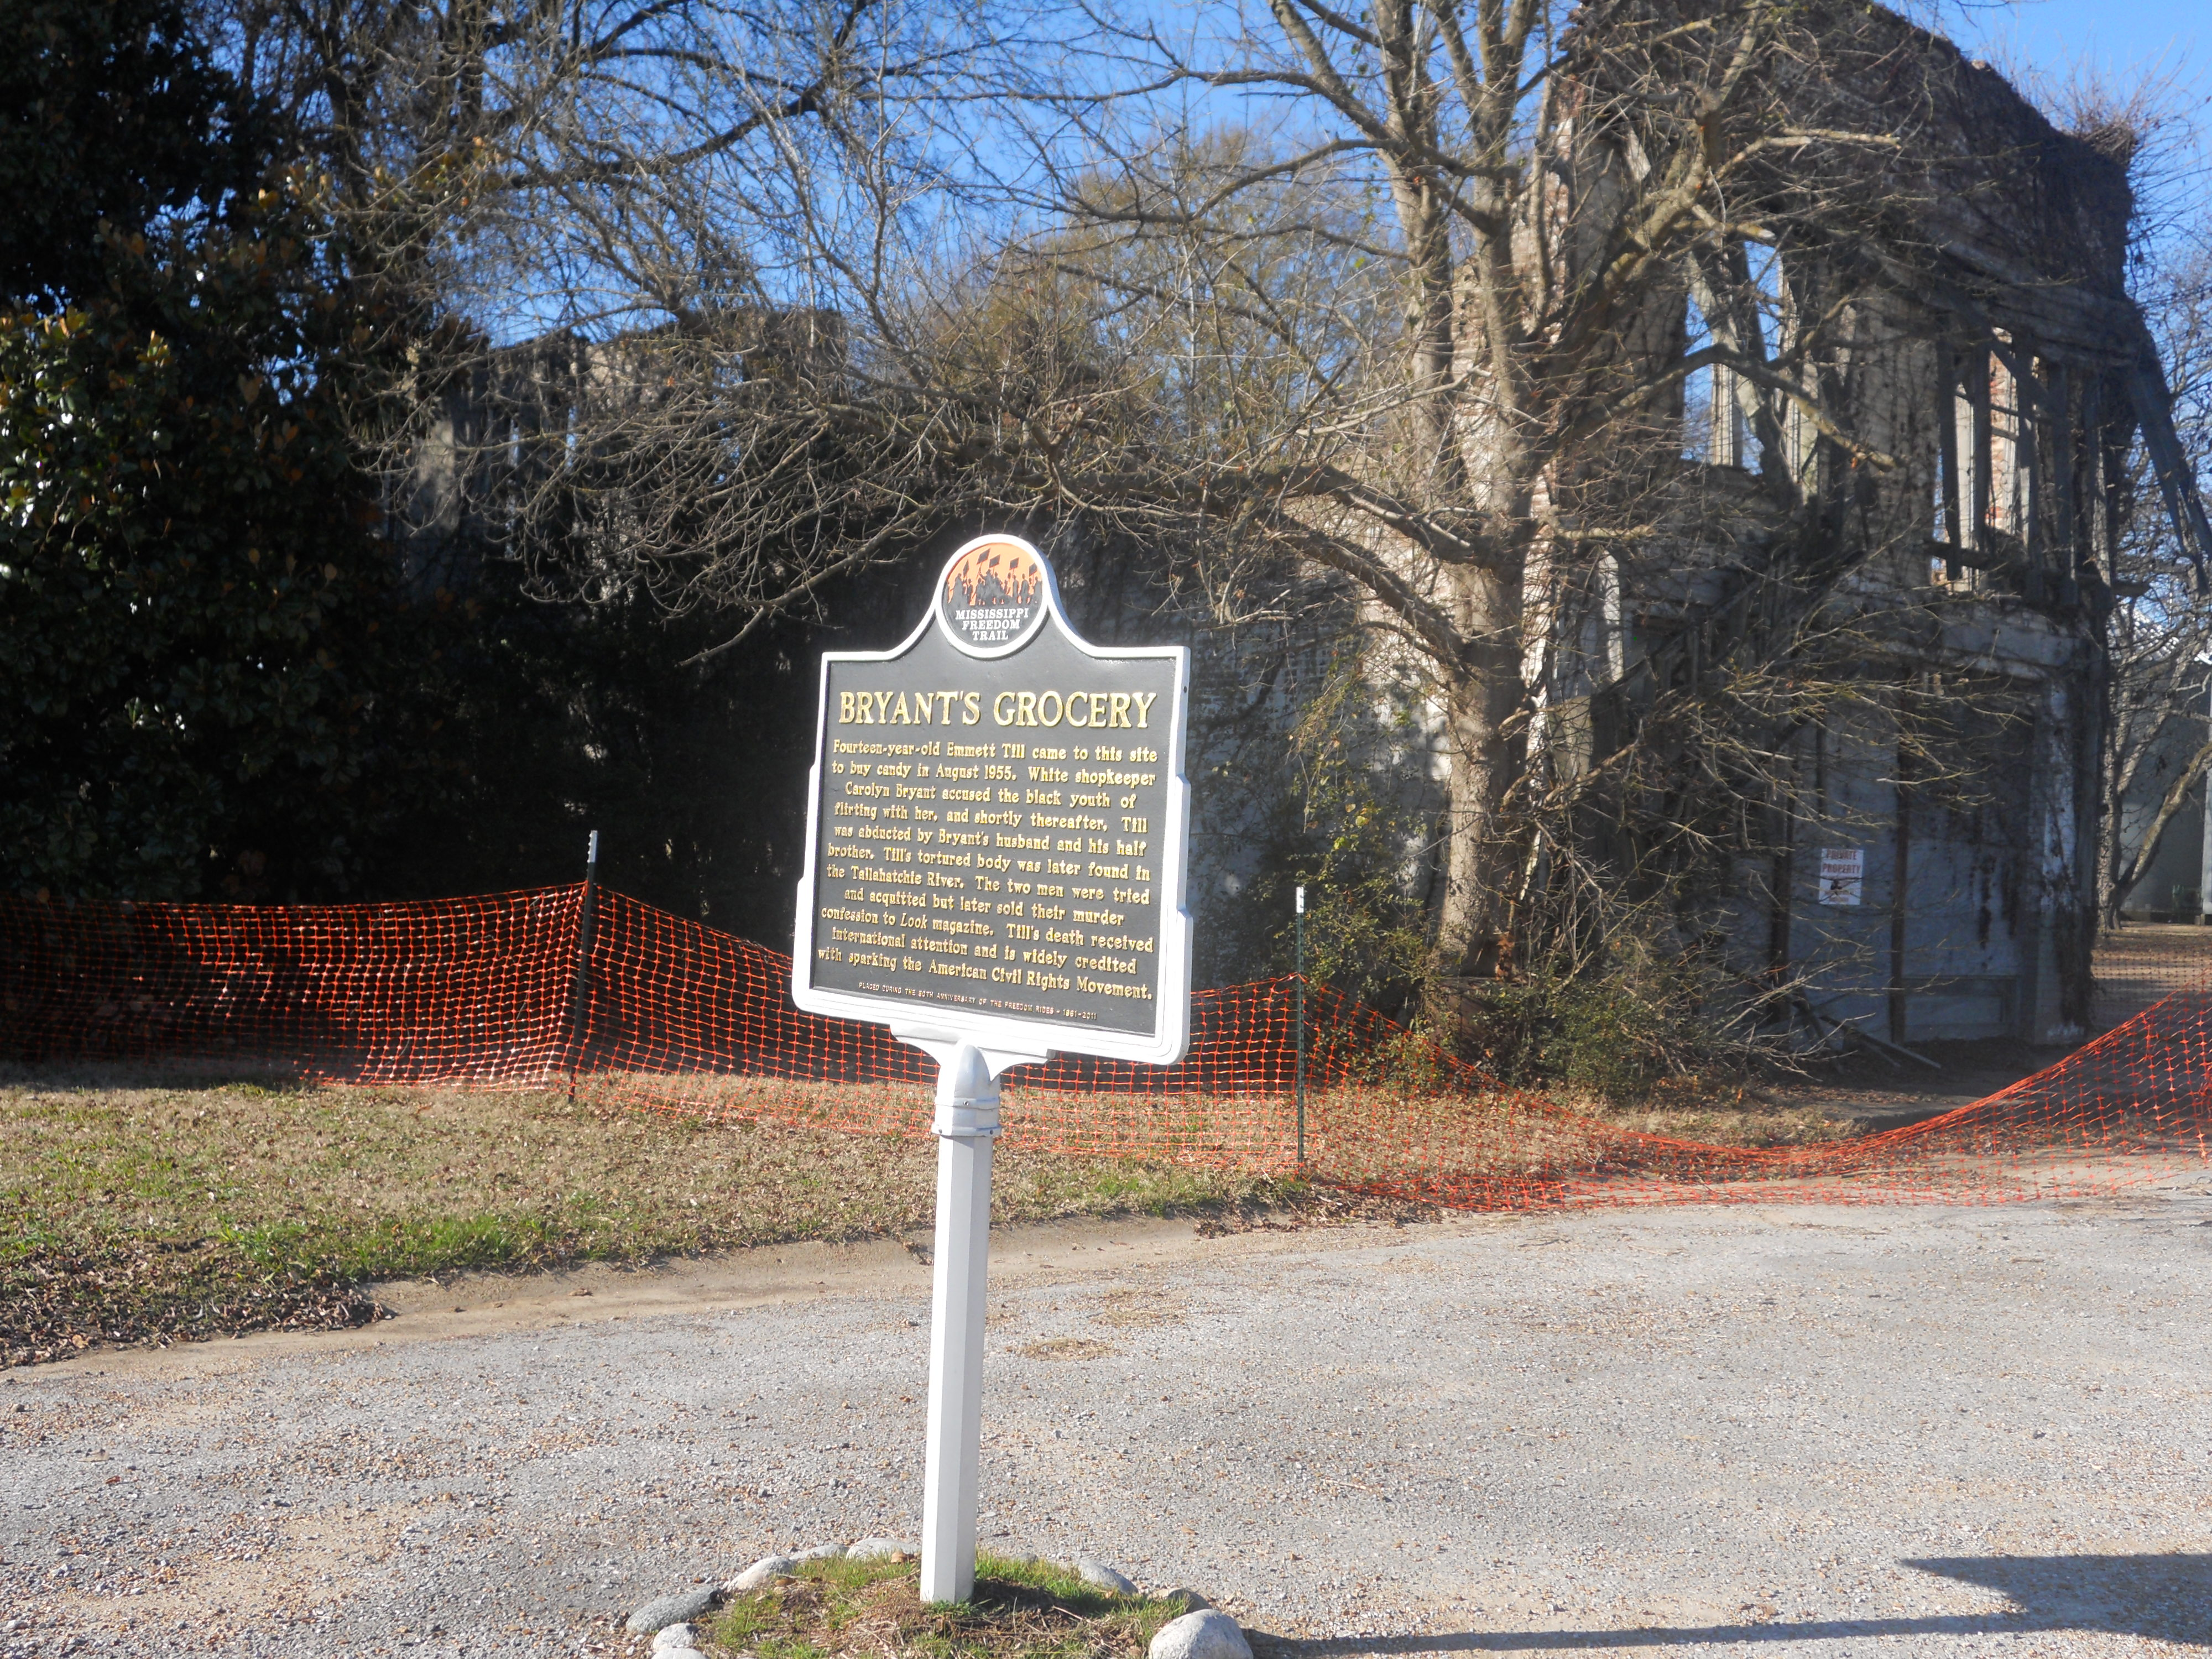 Bryants Grocery. Money, Mississippi. Historical marker in front of falling down building